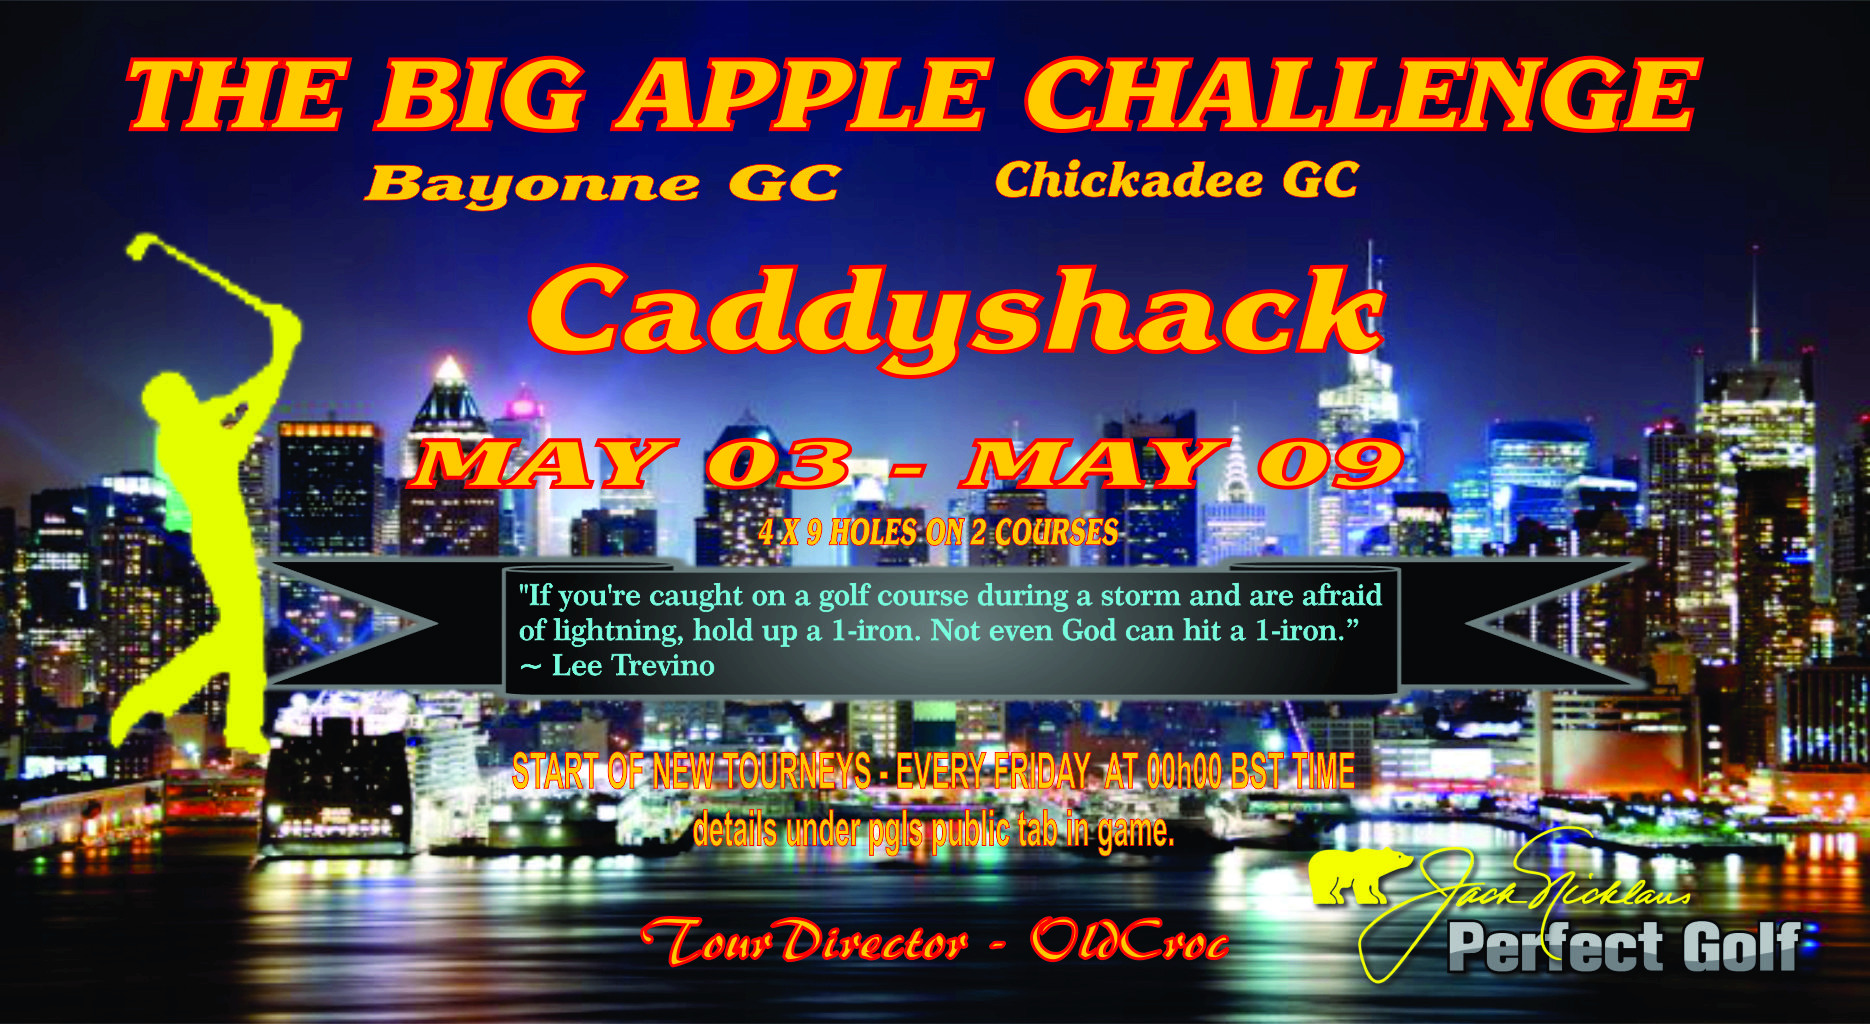 CaddyShack Weekly Tournament Bigapp10